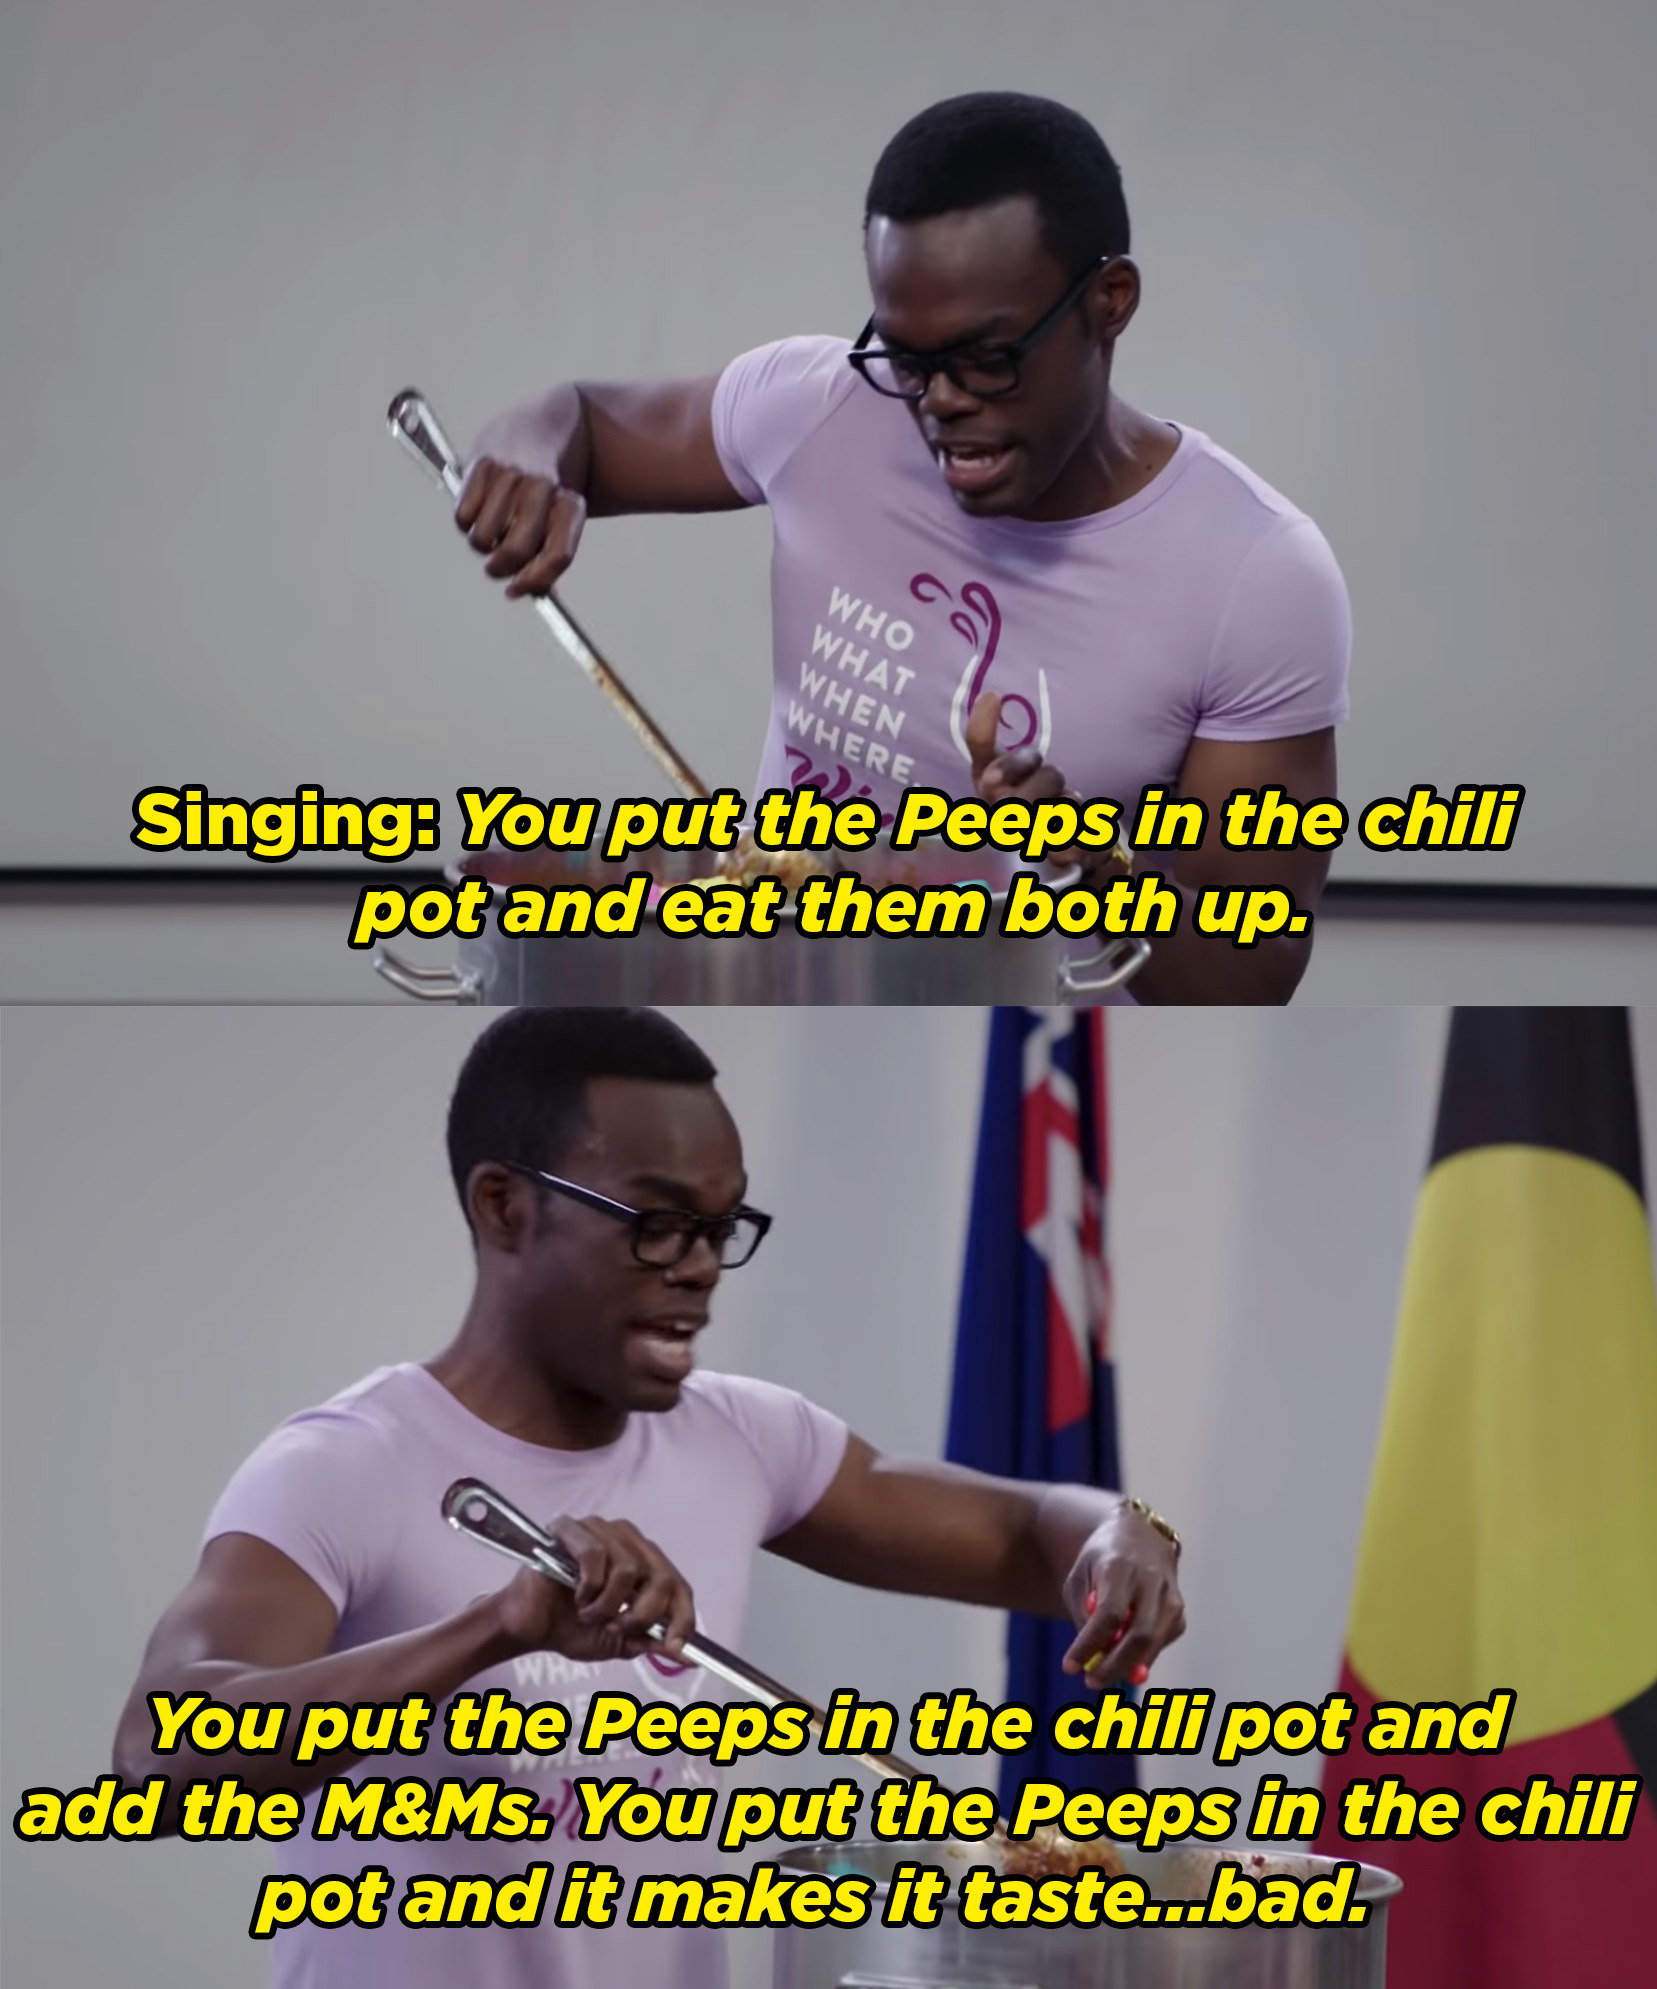 Chidi sings about adding Peeps to his chili pot and then realizes it tastes bad.